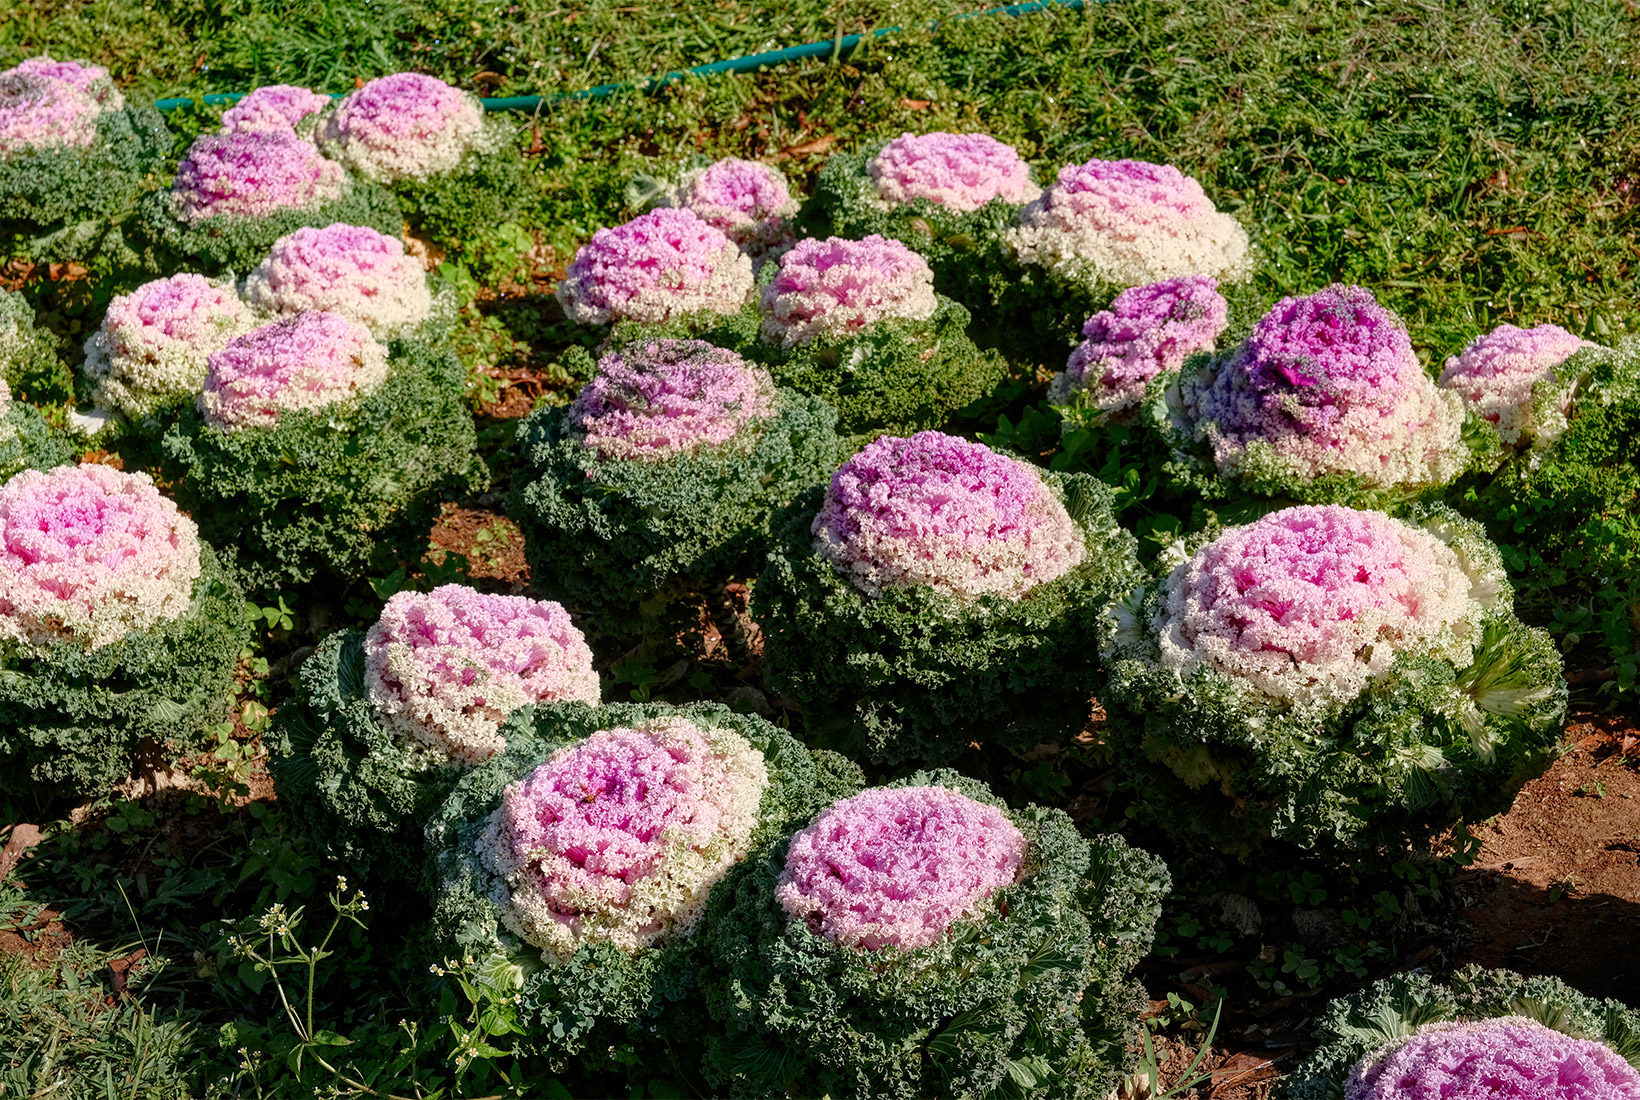 Ornamental Cabbage flowers at Royal Agricultural Reasearch Center at Doi Inthanon National Park, Thailand